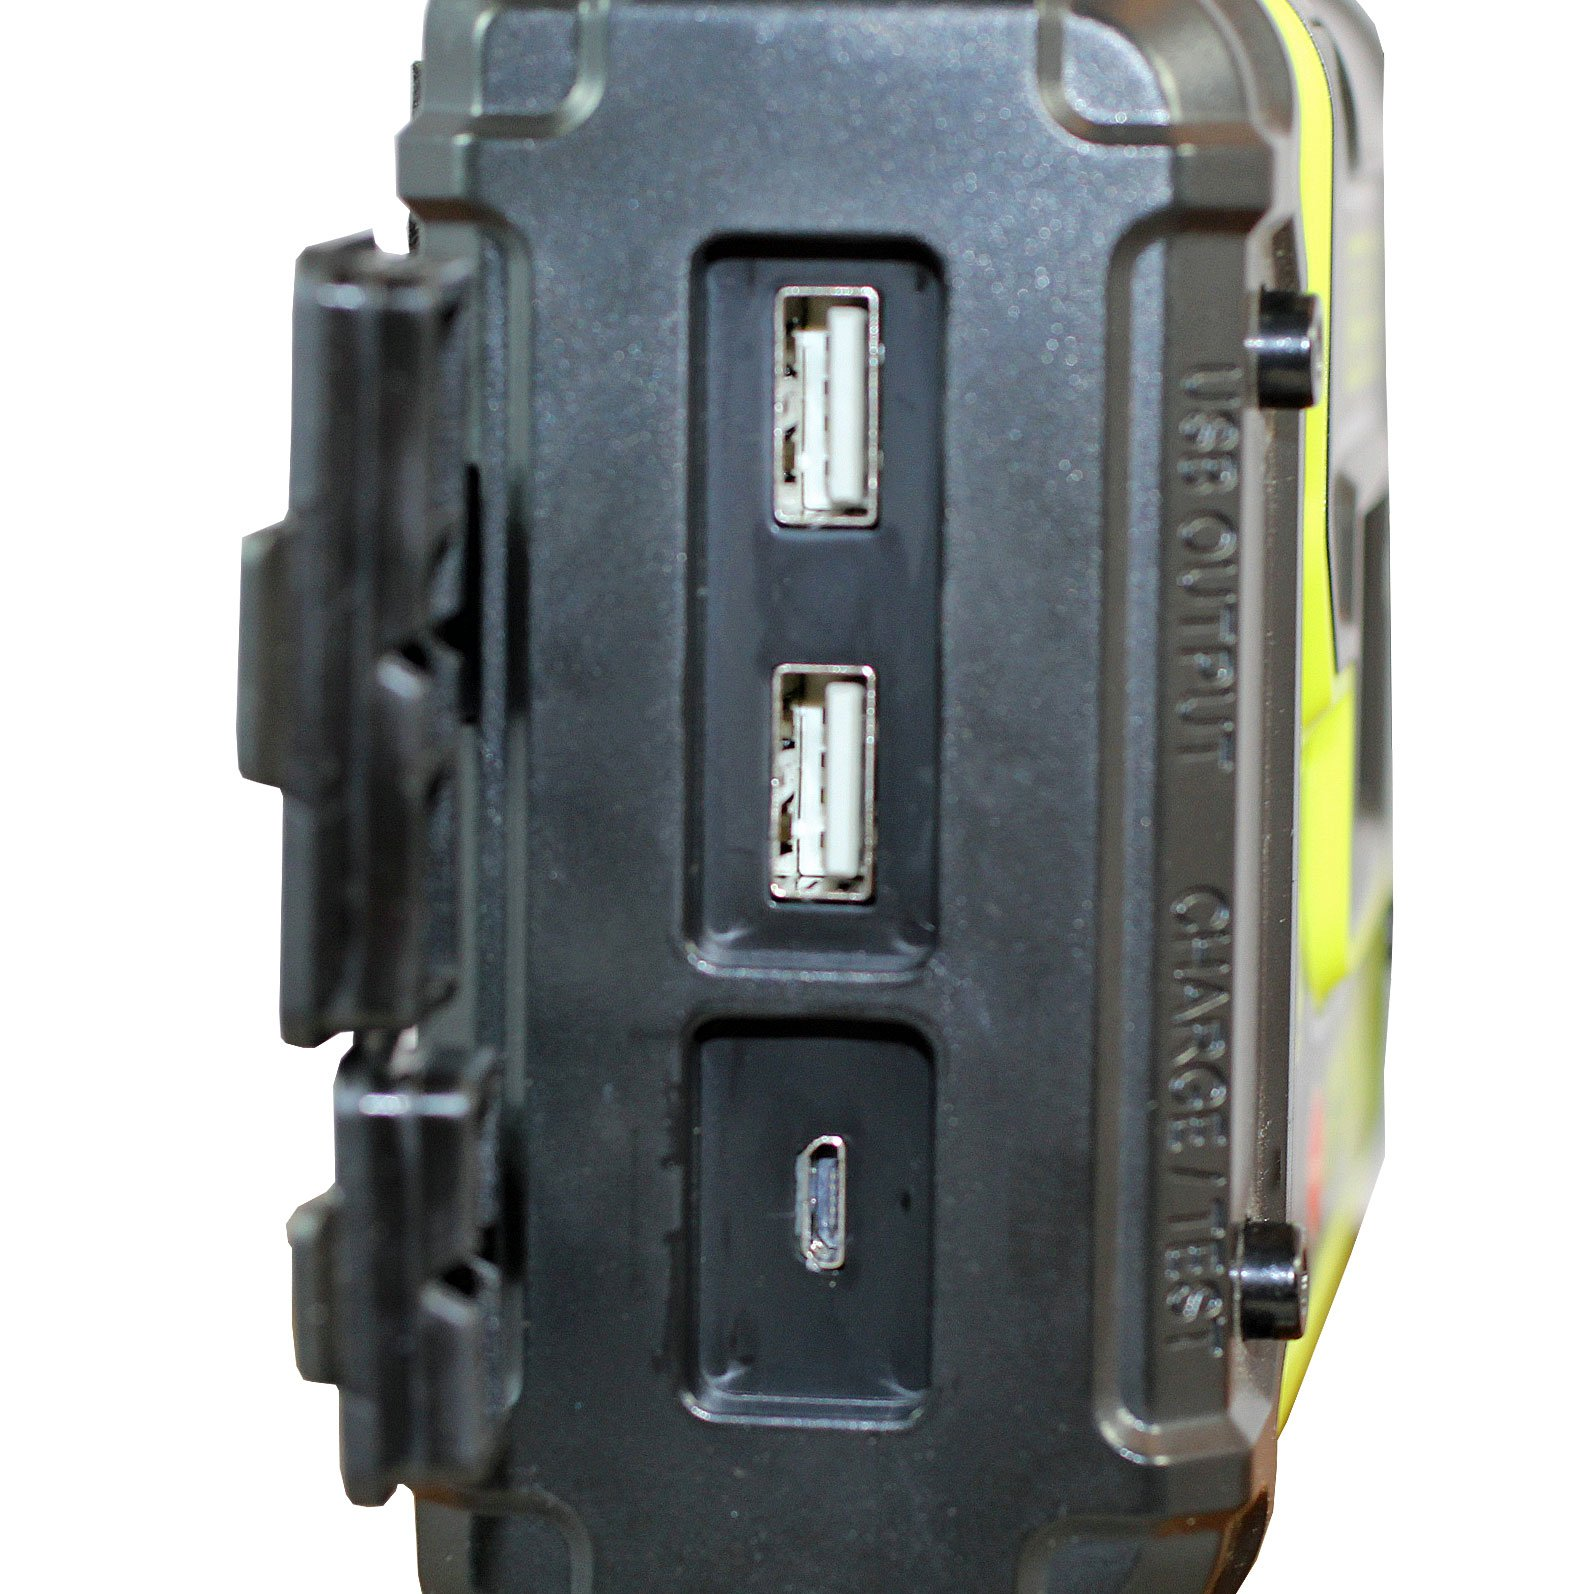 Quick Cable N2230 604022 Rescue Lifepo4 Jump Pack by Quick Cable (Image #5)